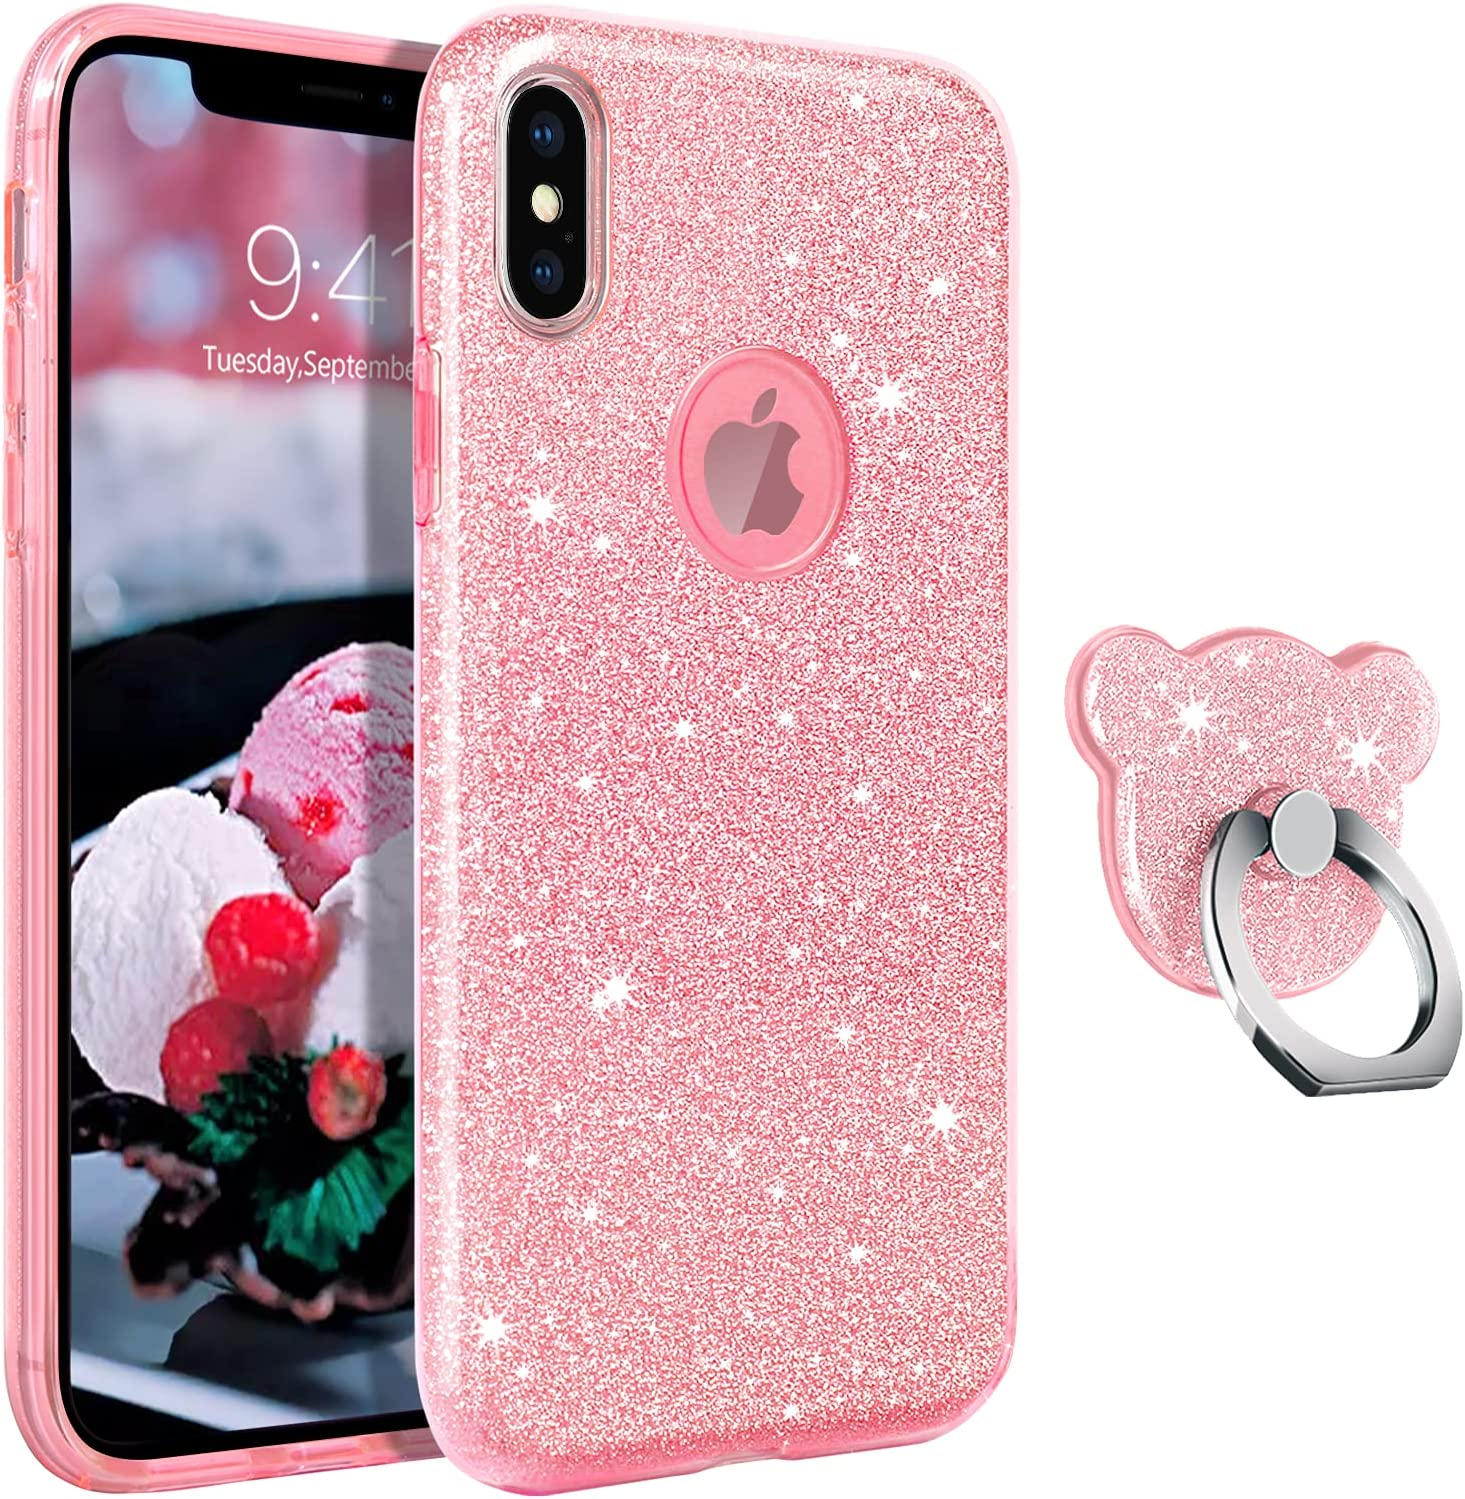 GUAGUA Compatible for iPhone Xs/X Case 5.8 Inch Glitter Sparkle Bling Shiny Cute Cover for Women Girls with Extra Finger Ring Holder Kickstand Slim Protective Cases for iPhone Xs/X Pink Rose Gold